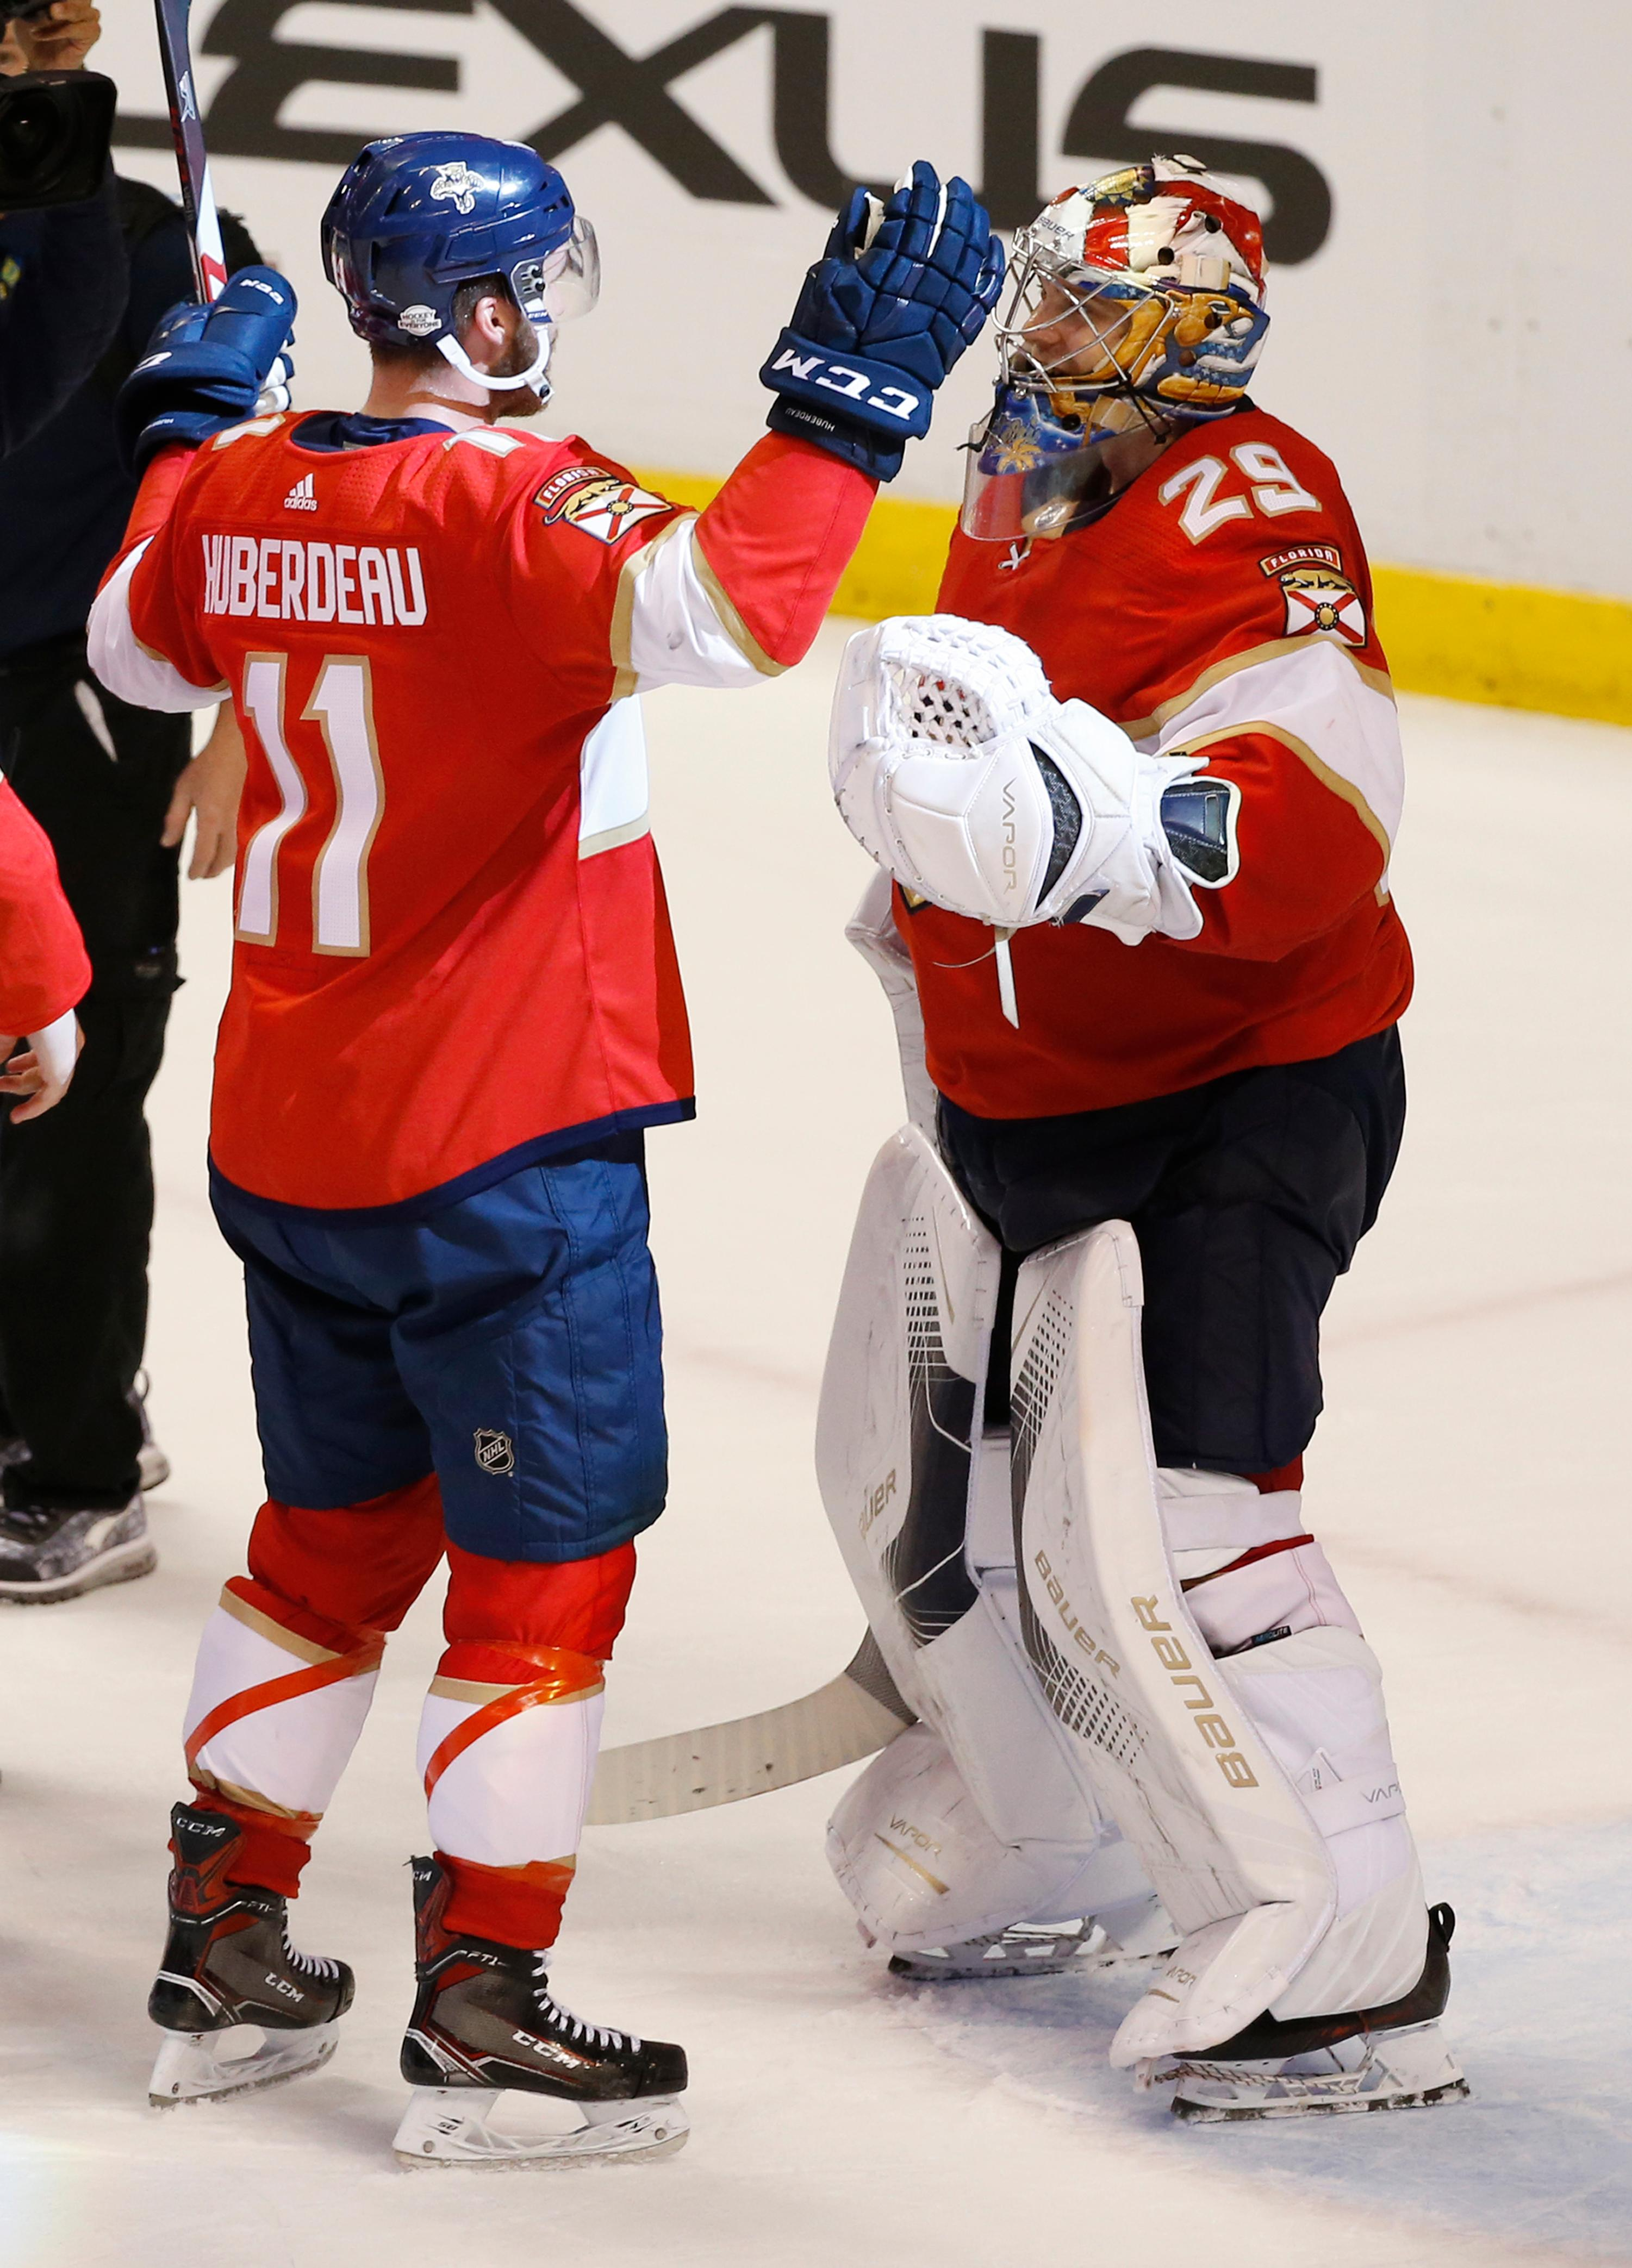 Florida Panthers left wing Jonathan Huberdeau (11) celebrates with goaltender Harri Sateri (29) after the Panthers defeated the Detroit Red Wings 3-2, during an NHL hockey game, Saturday, Feb. 3, 2018 in Sunrise, Fla. Huberdeau scored the game winning goal. (AP Photo/Wilfredo Lee)